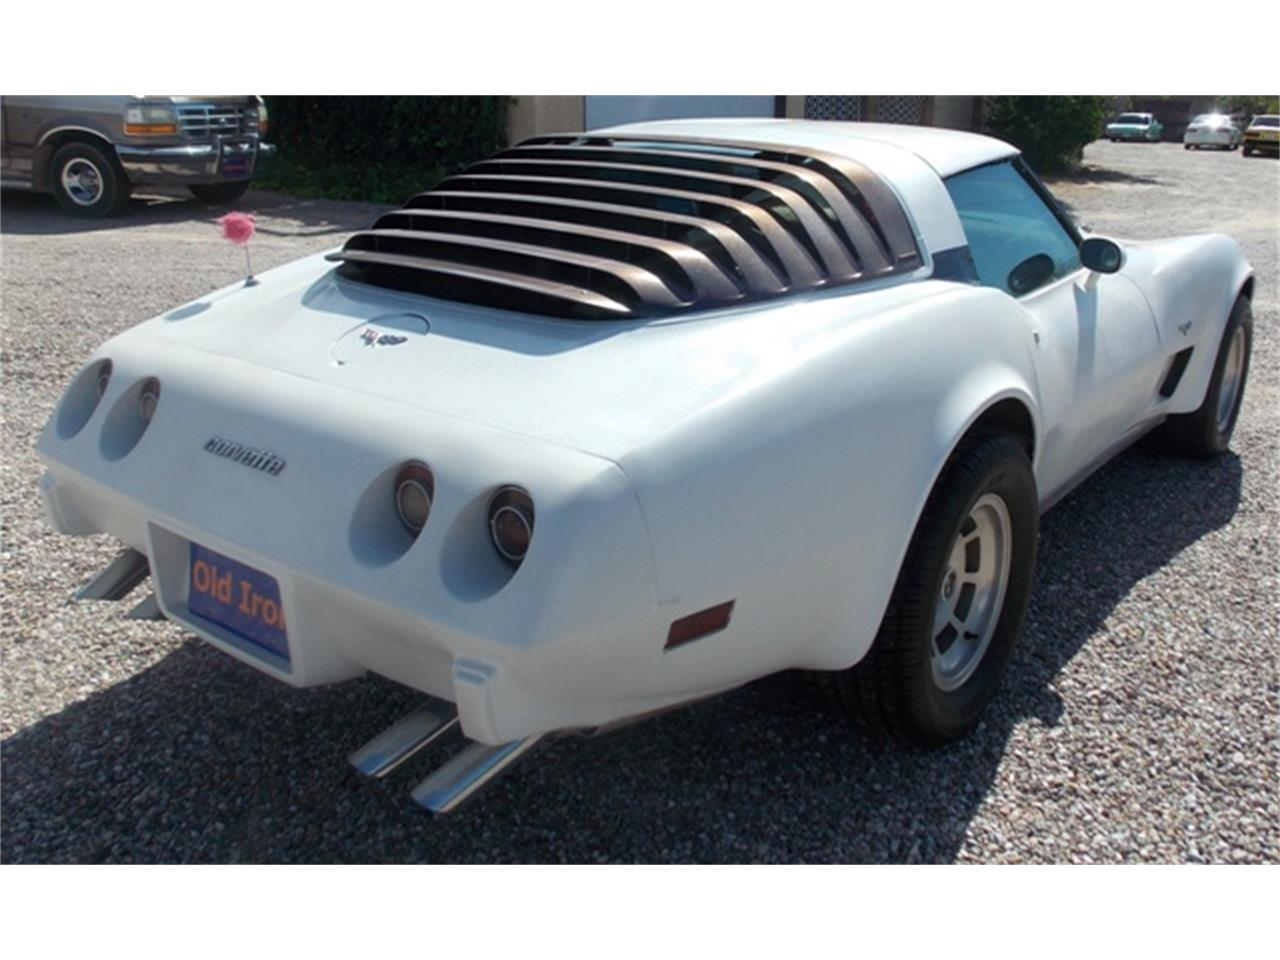 Large Picture of '79 Chevrolet Corvette located in AZ - Arizona - $9,000.00 Offered by Old Iron AZ LLC - QW3D